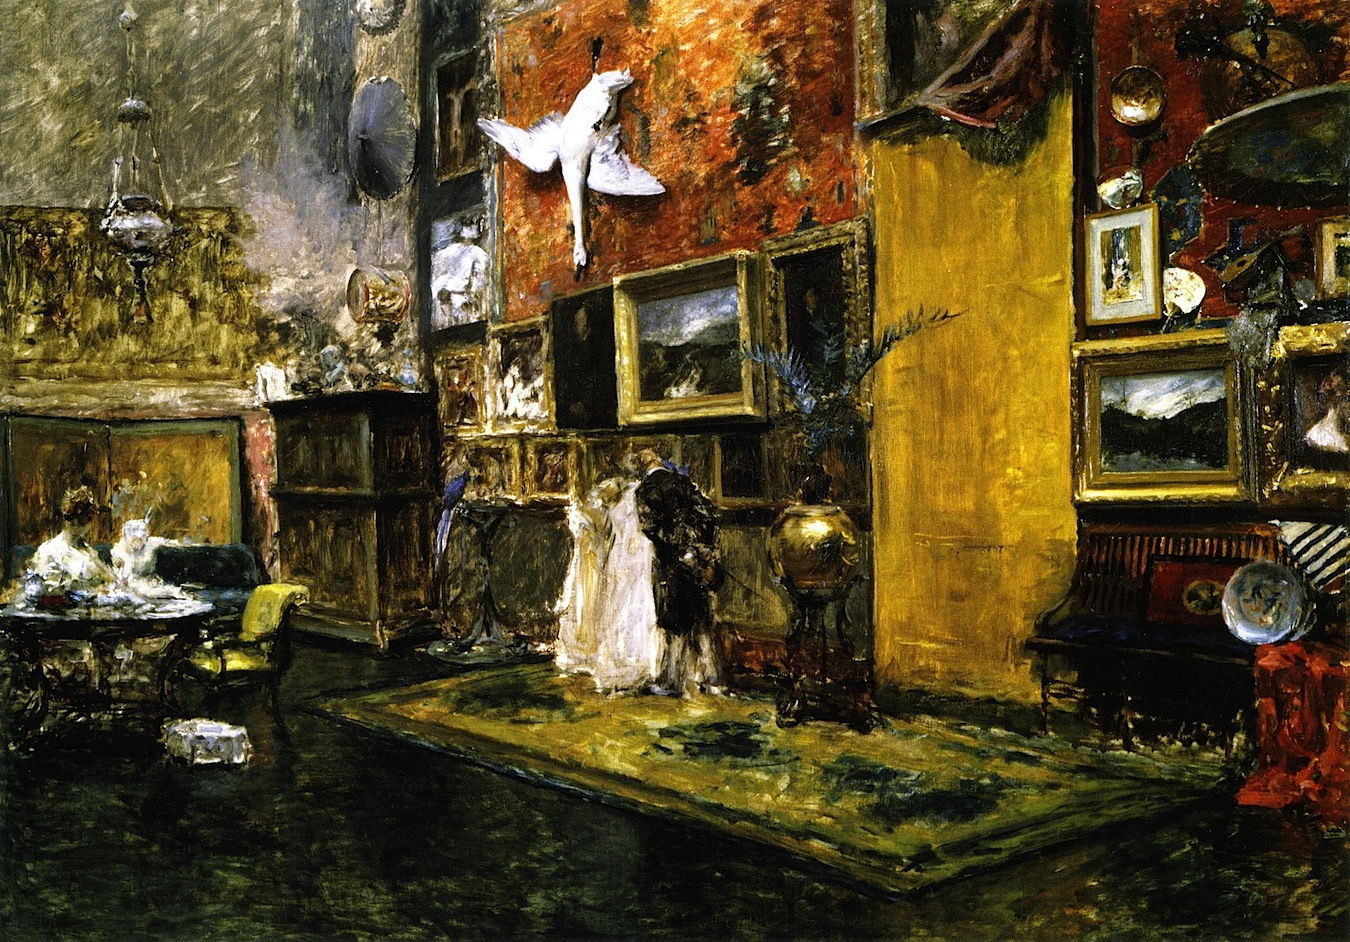 An analysis of the tenth street studio by william merritt chase